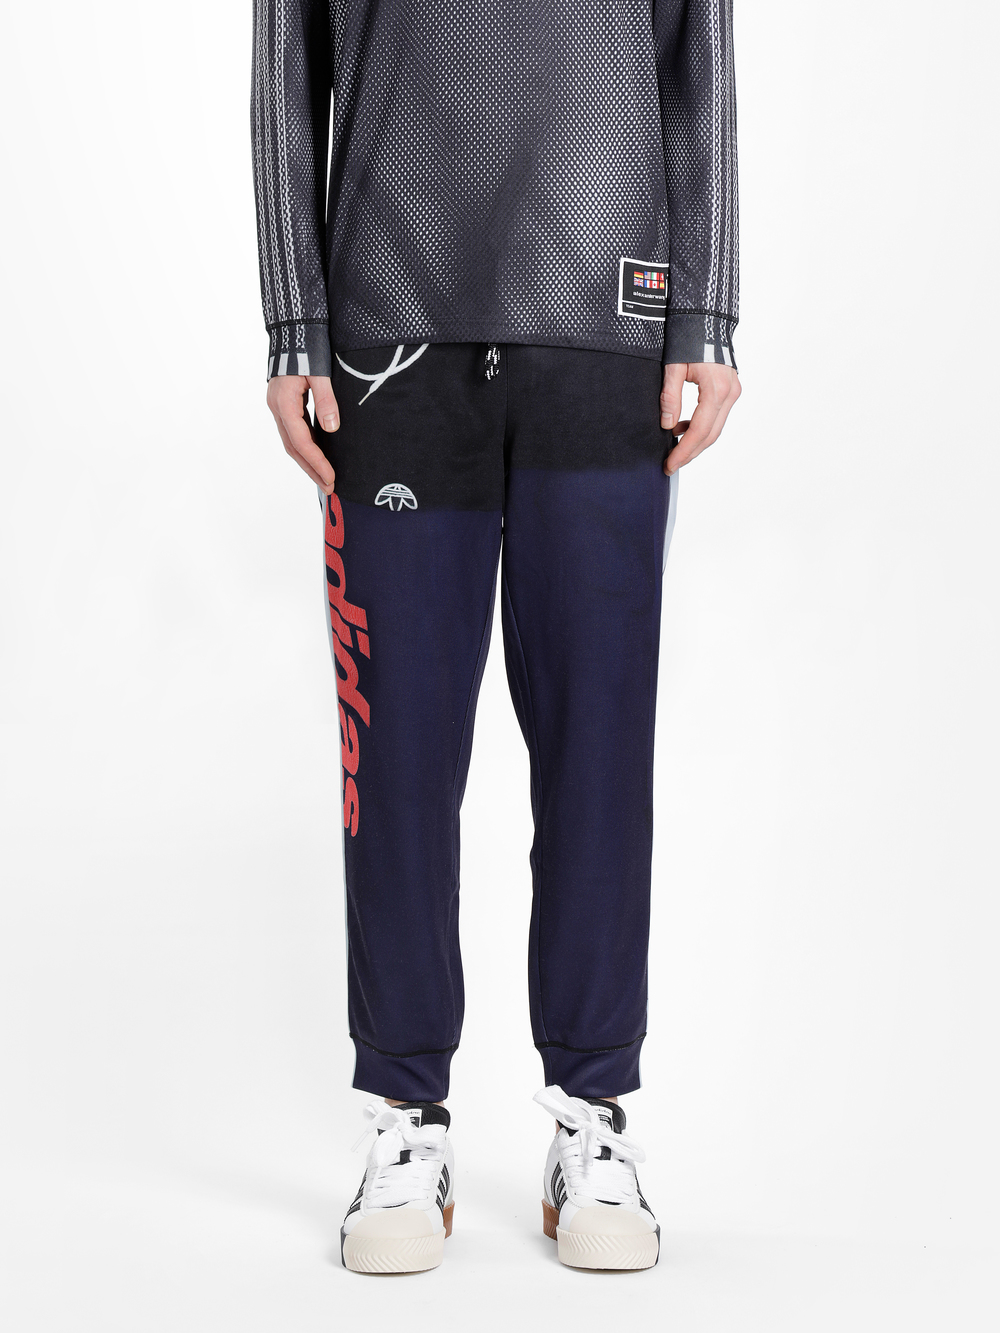 Adidas Originals By Alexander Wang Adidas By Alexander Wang Trousers In Multicolor